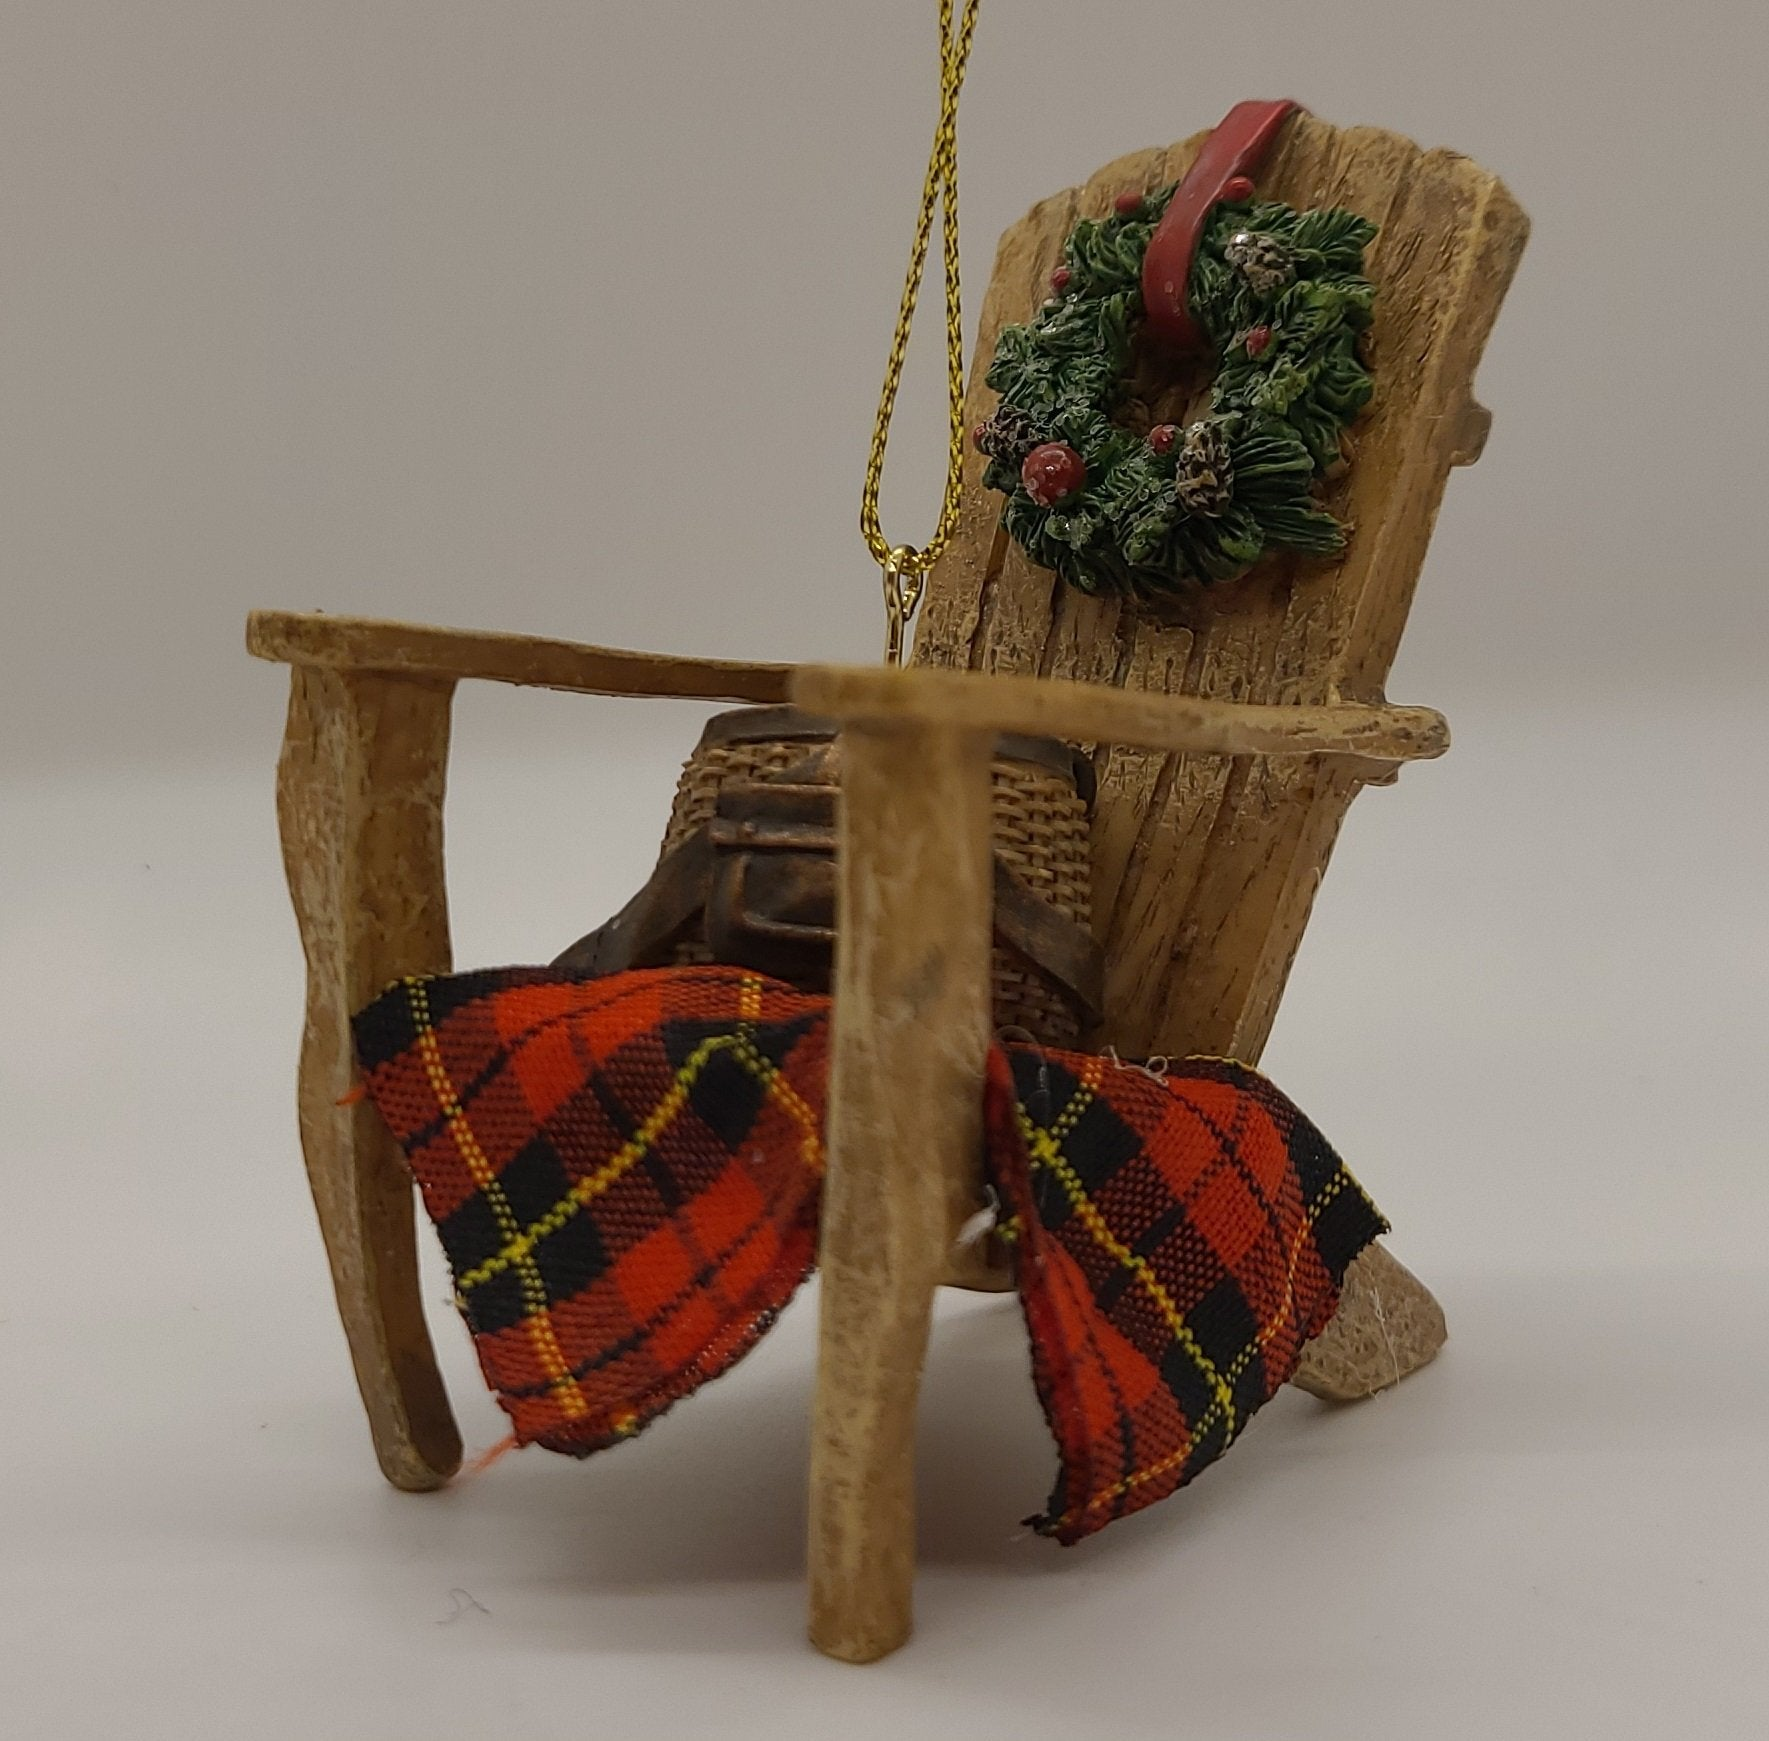 Kurt Adler 4 'Resin Lodge Chair With Wreath And Selimut - Hiasan Krismas Pasar Krismas Schmidt